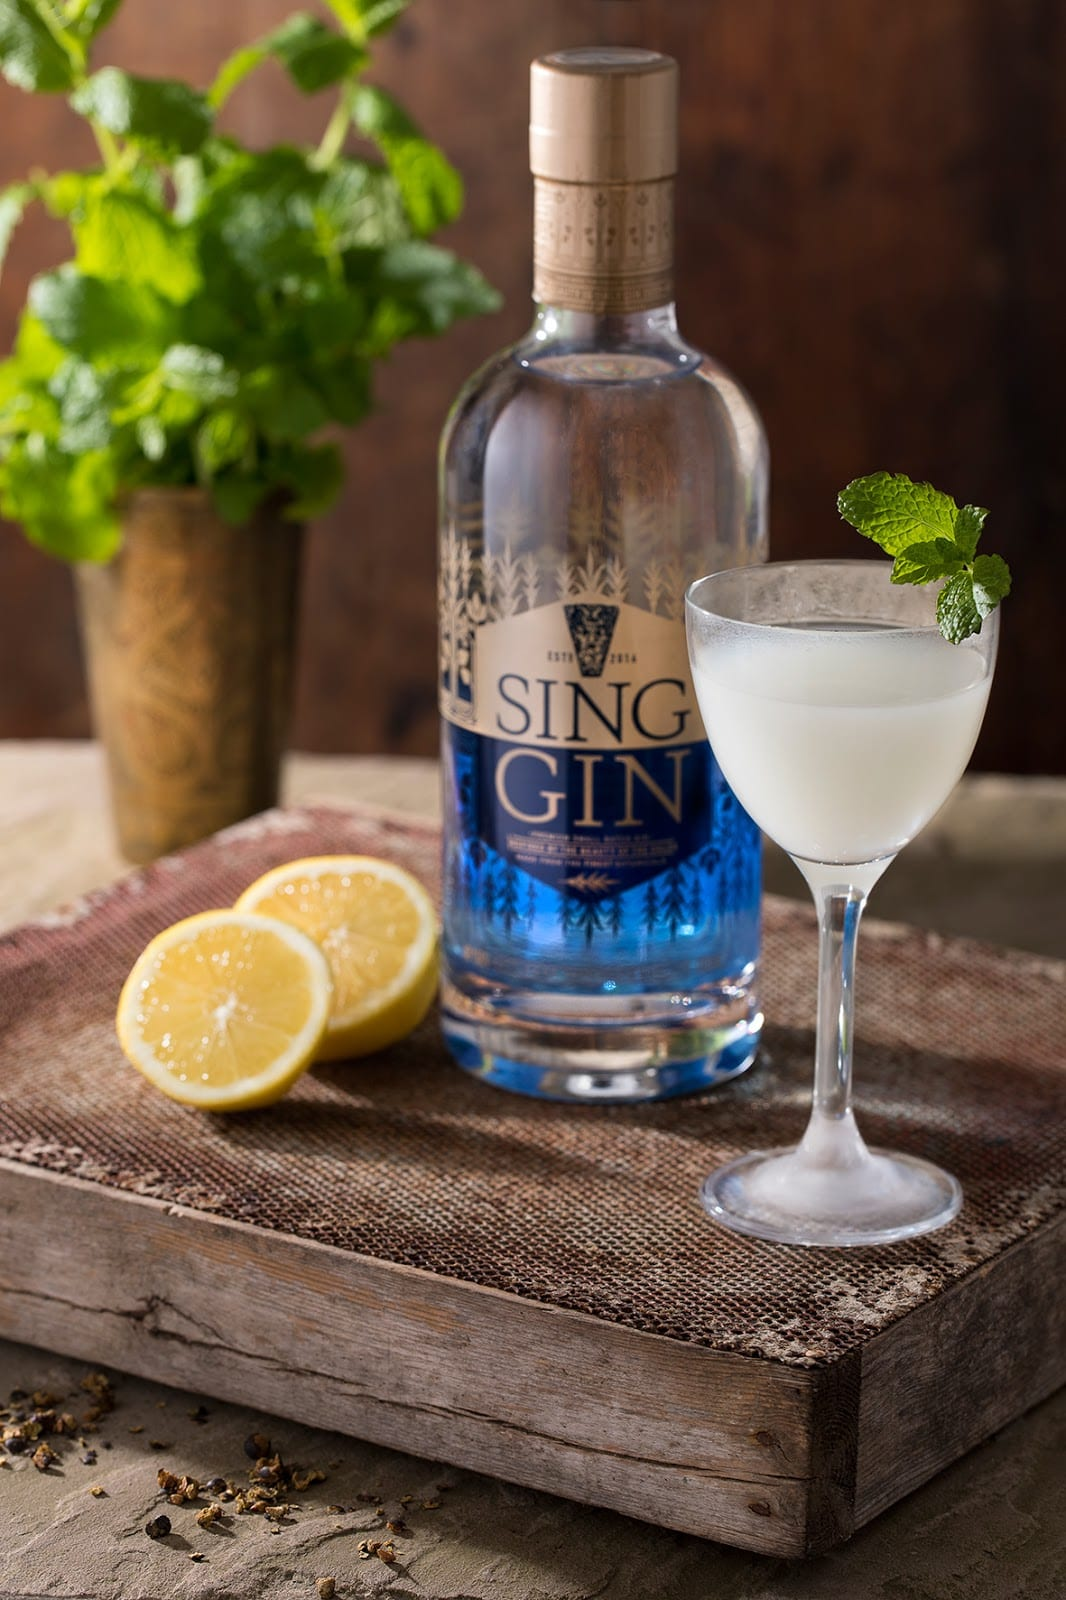 Sing Gin 05 - Ach, tie obaly – Sing Gin